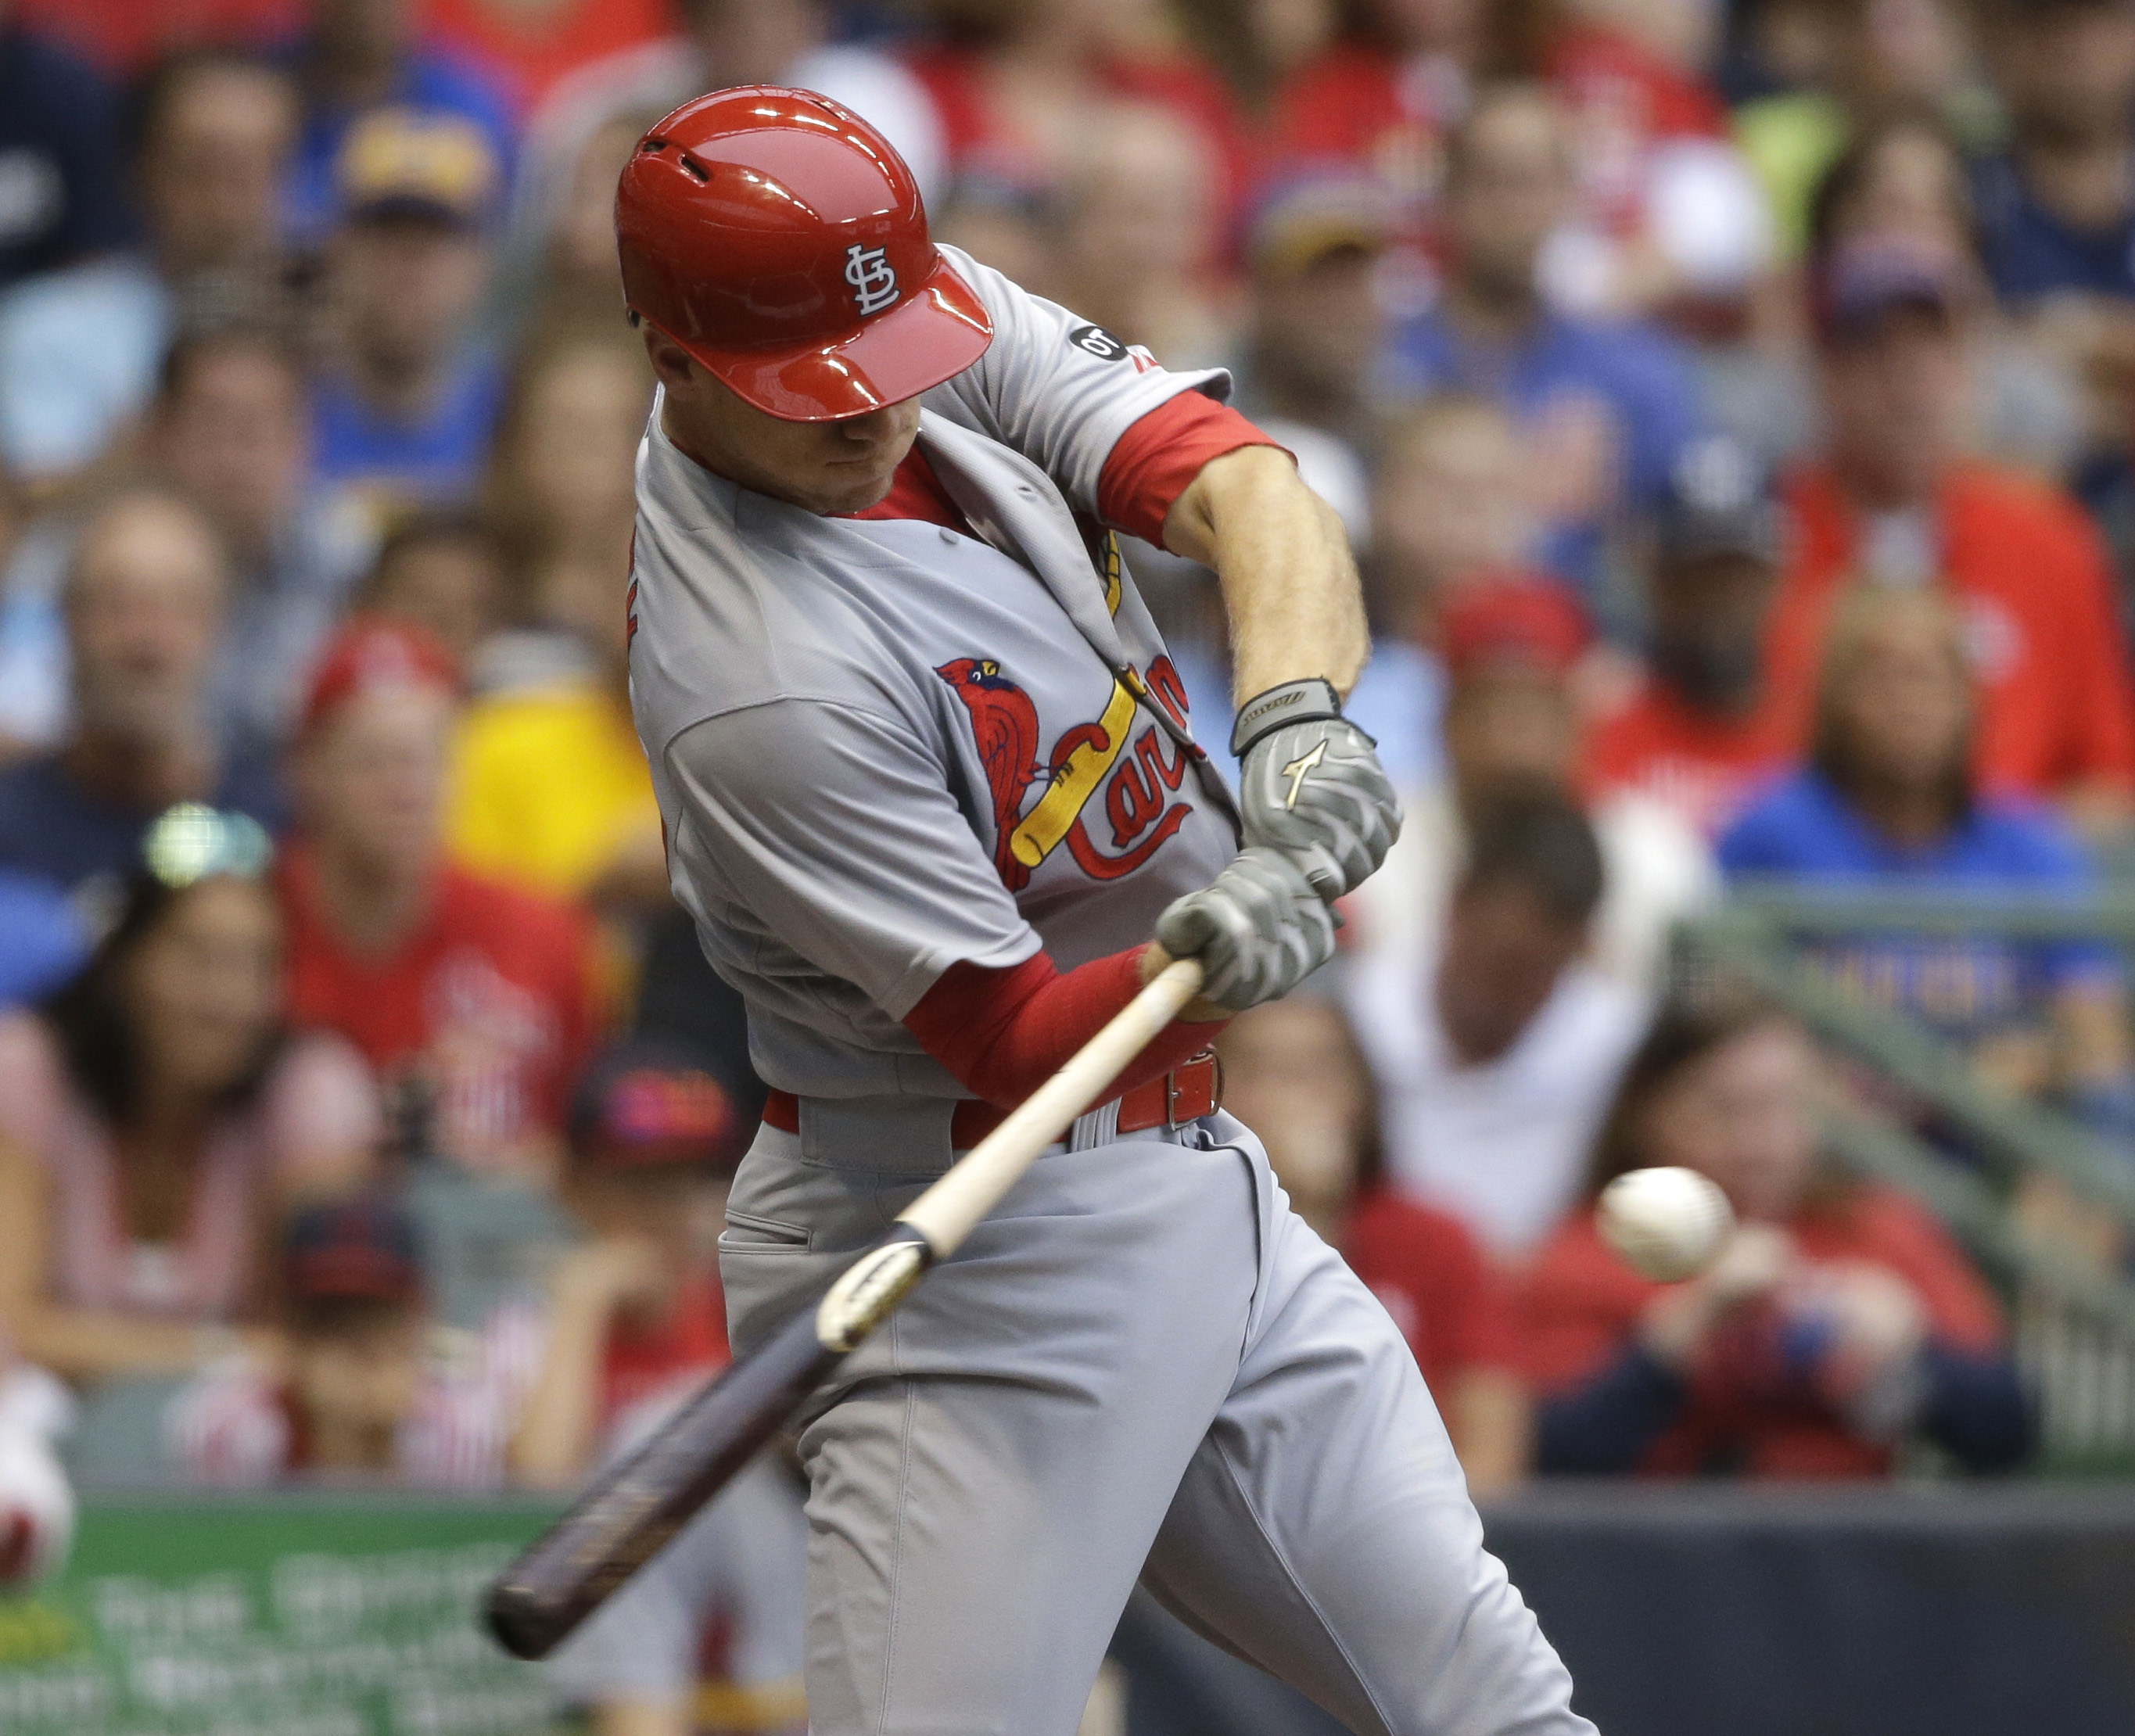 St. Louis Cardinals' Stephen Piscotty hits a run-scoring single against the Milwaukee Brewers during the second inning of a baseball game Saturday, Aug. 8, 2015, in Milwaukee. (AP Photo/Jeffrey Phelps)